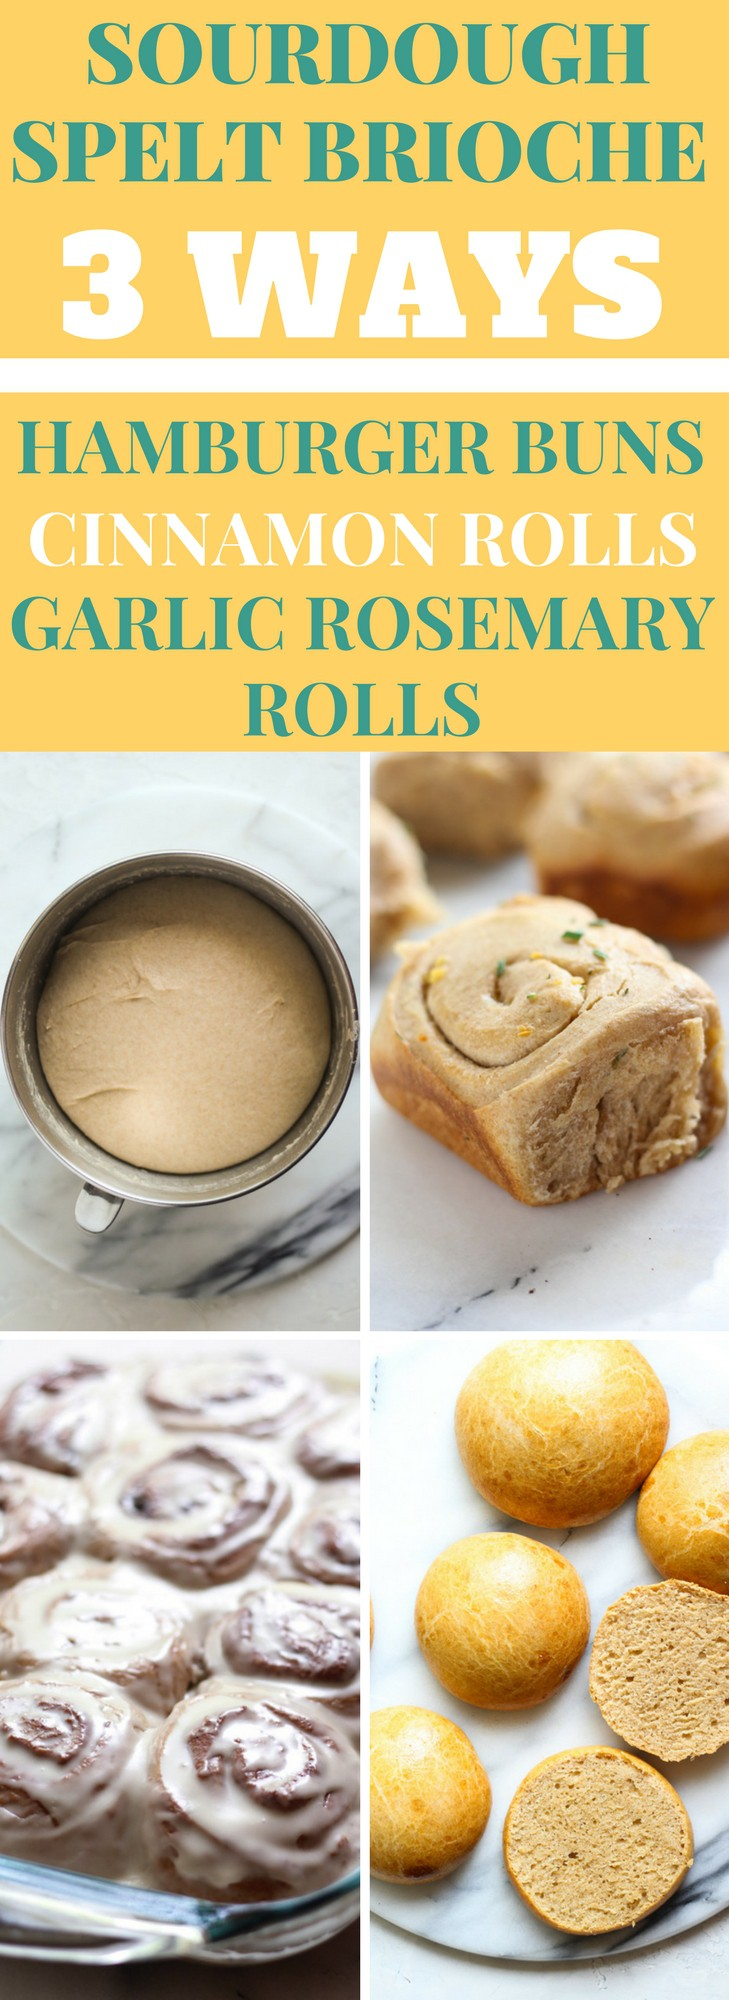 Learn 3 ways to make sourdough spelt brioche dough. Transform them into sourdough cinnamon rolls, garlic rosemary rolls, and hamburger brioche buns